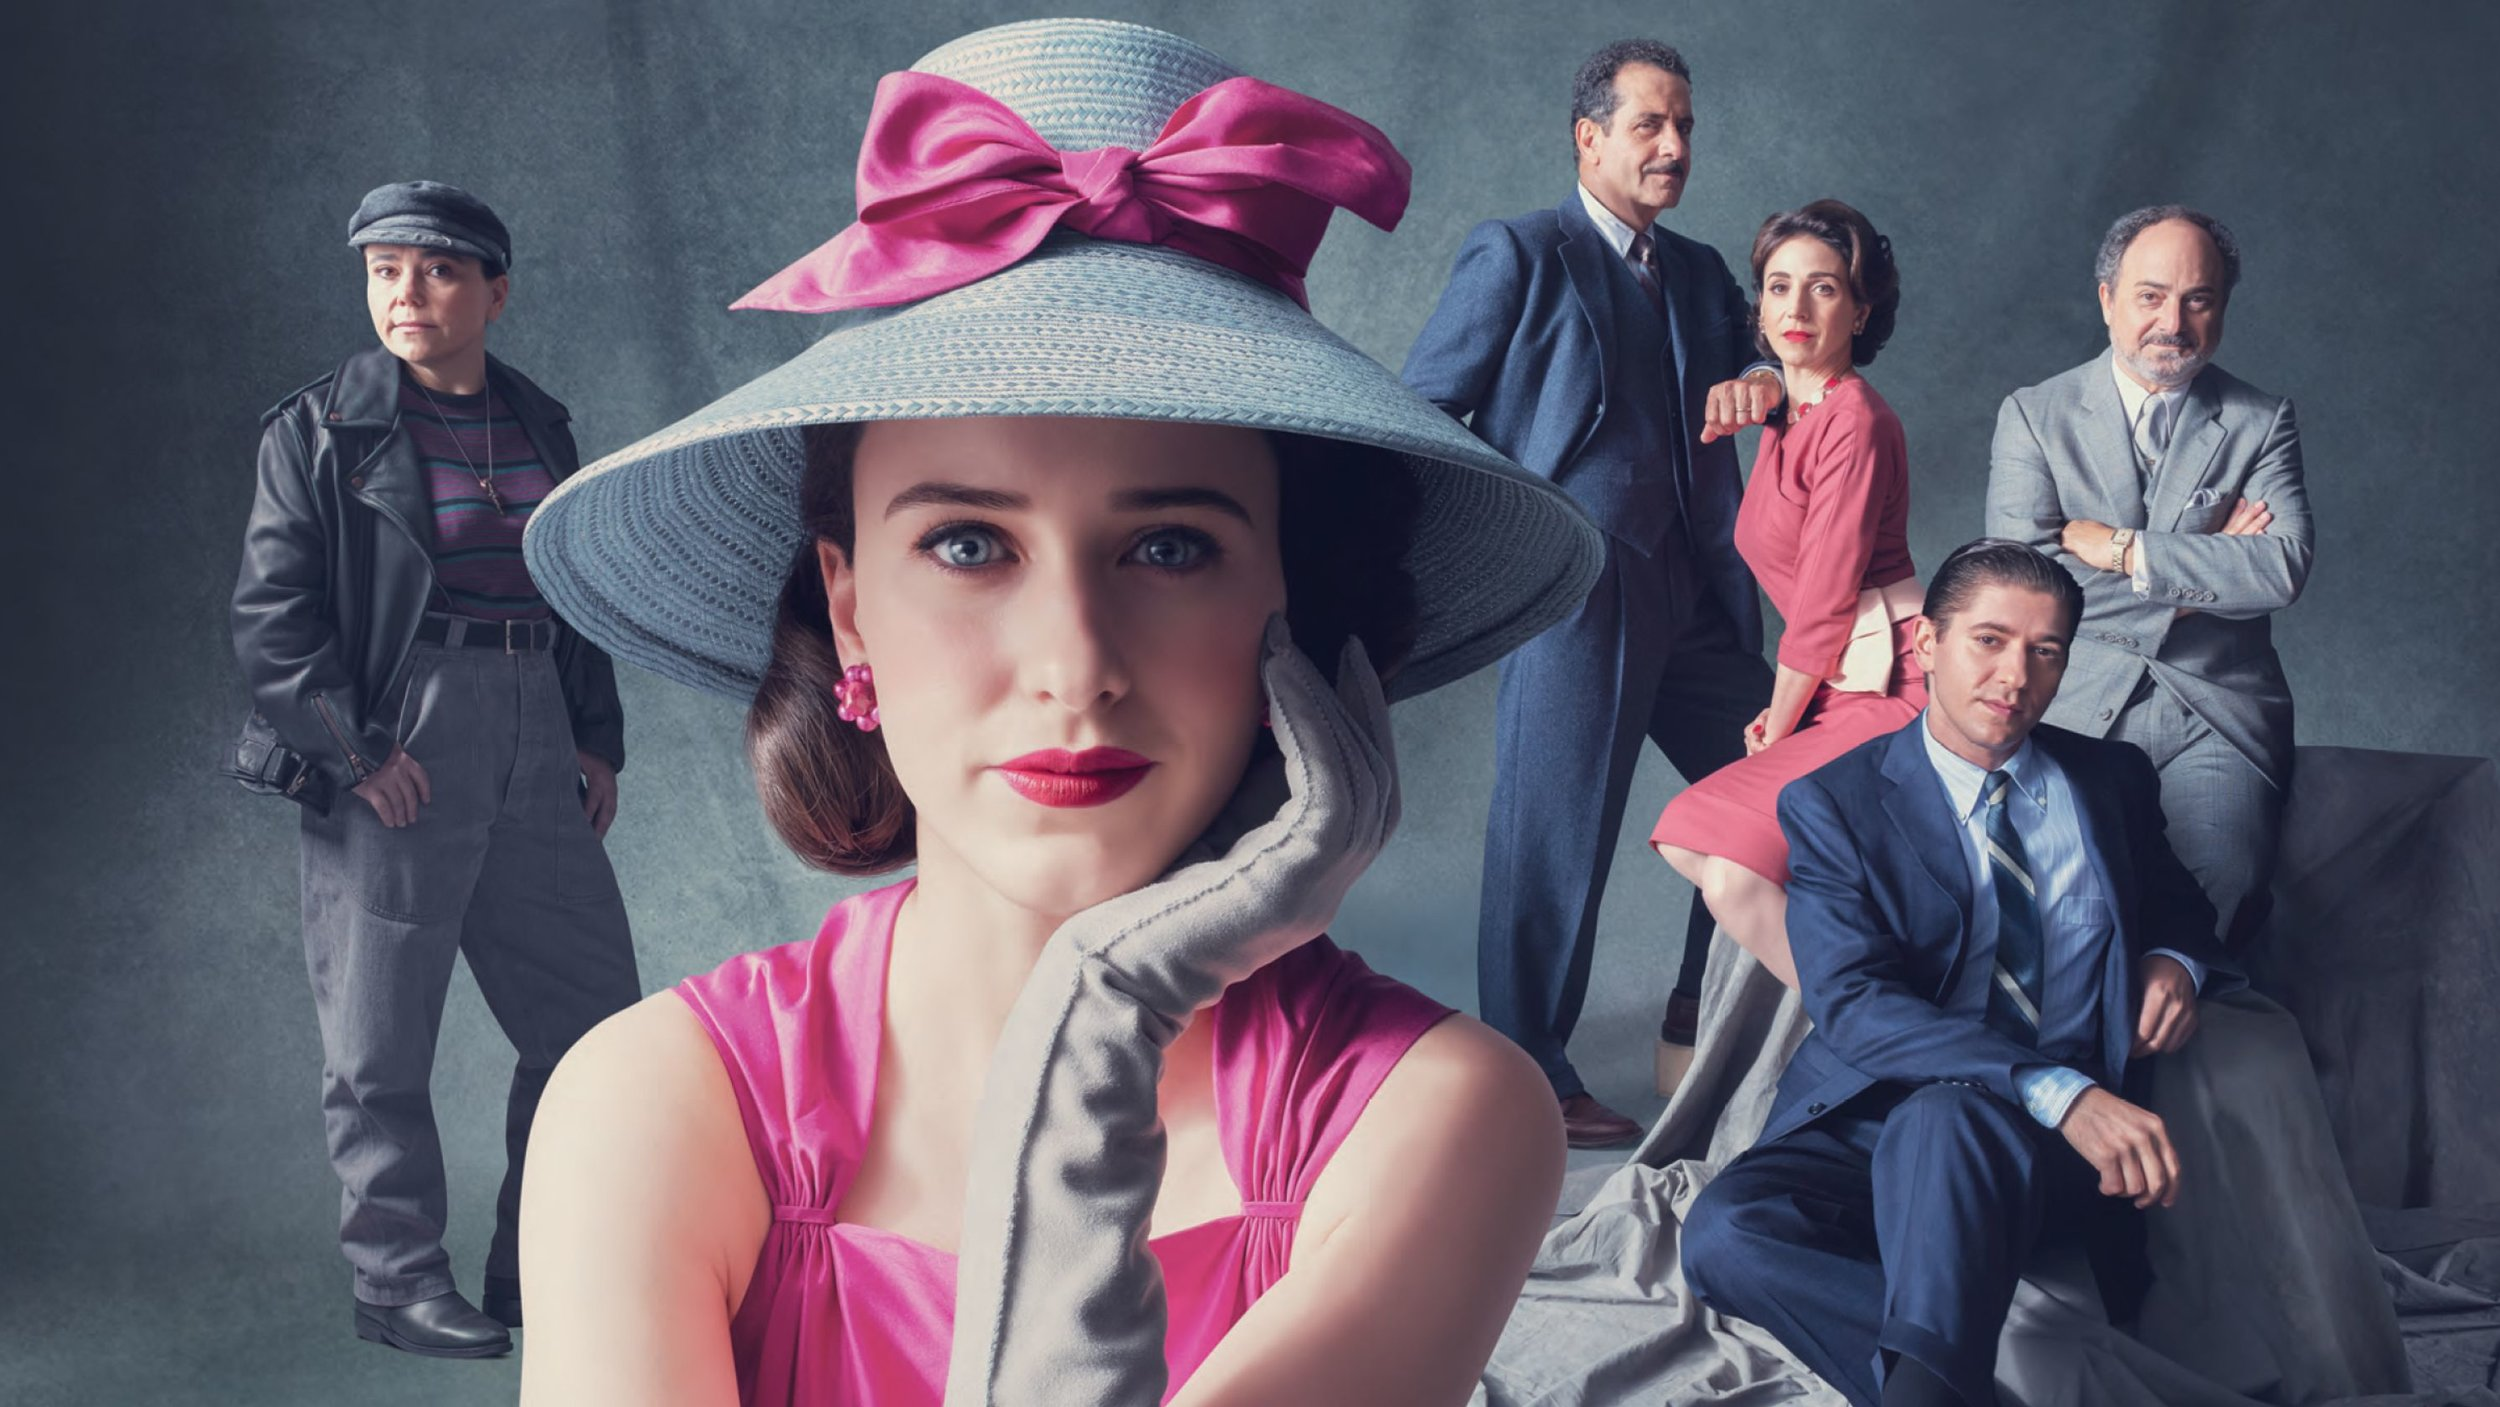 Photography: The Marvelous Mrs. Maisel